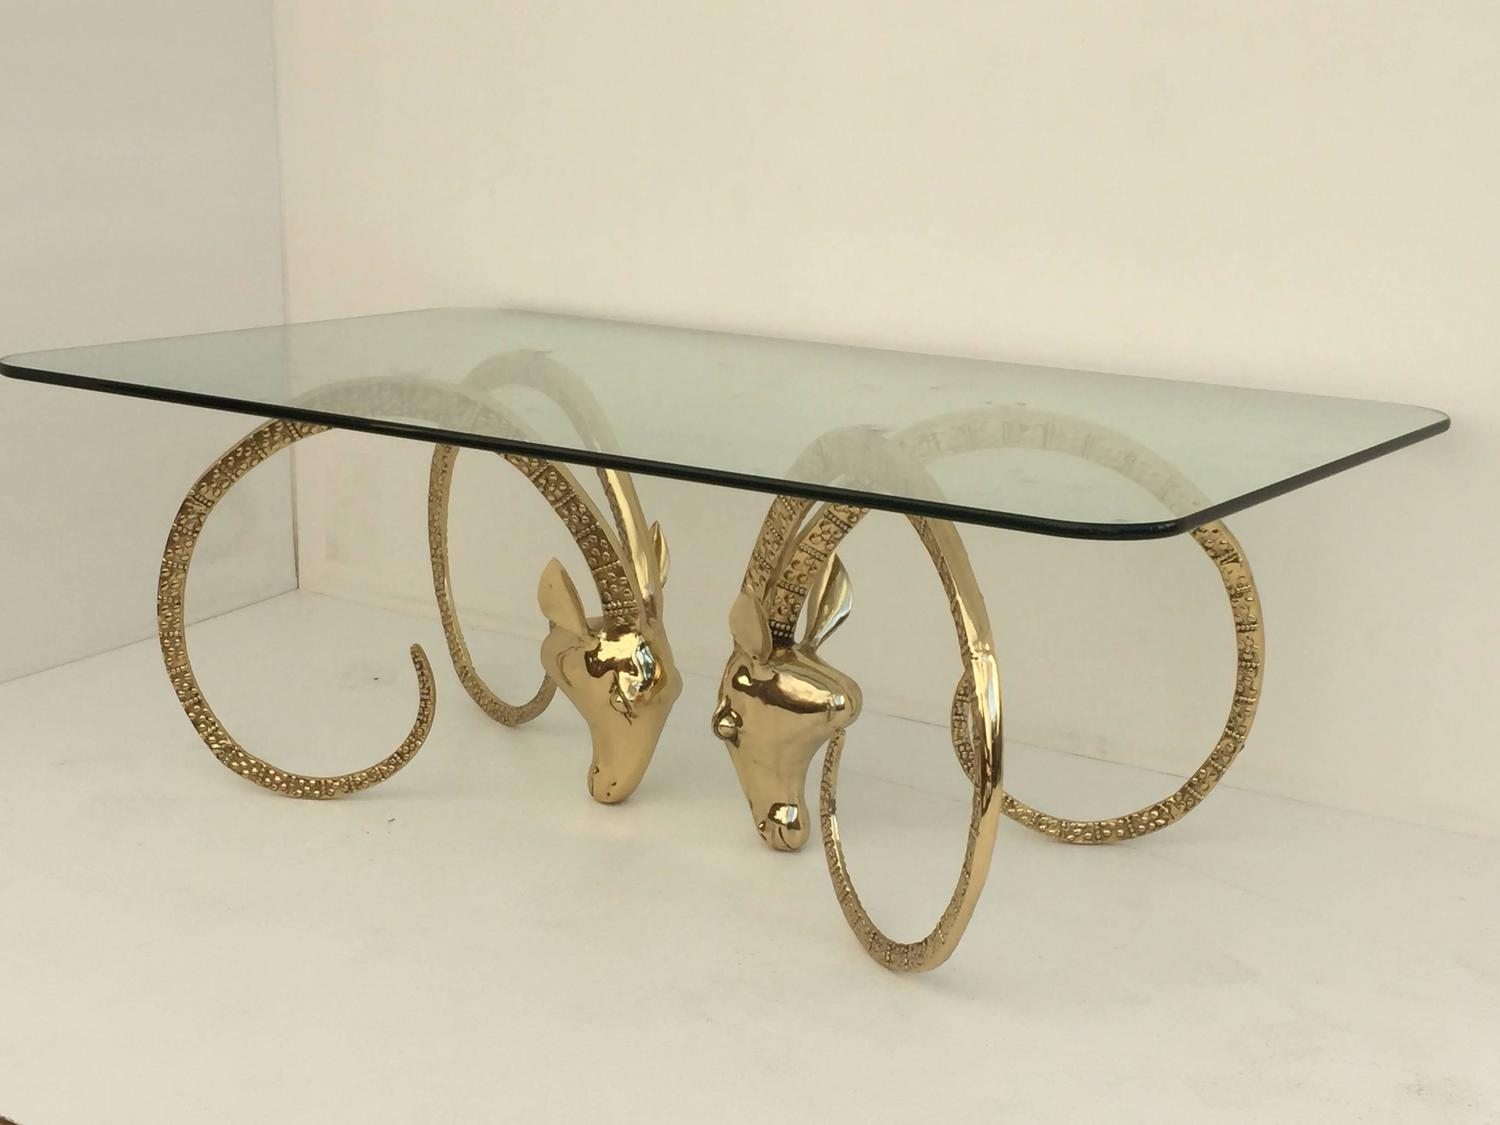 Polished Brass Ibex or Ram's Head Coffee Table For Sale at 1stdibs